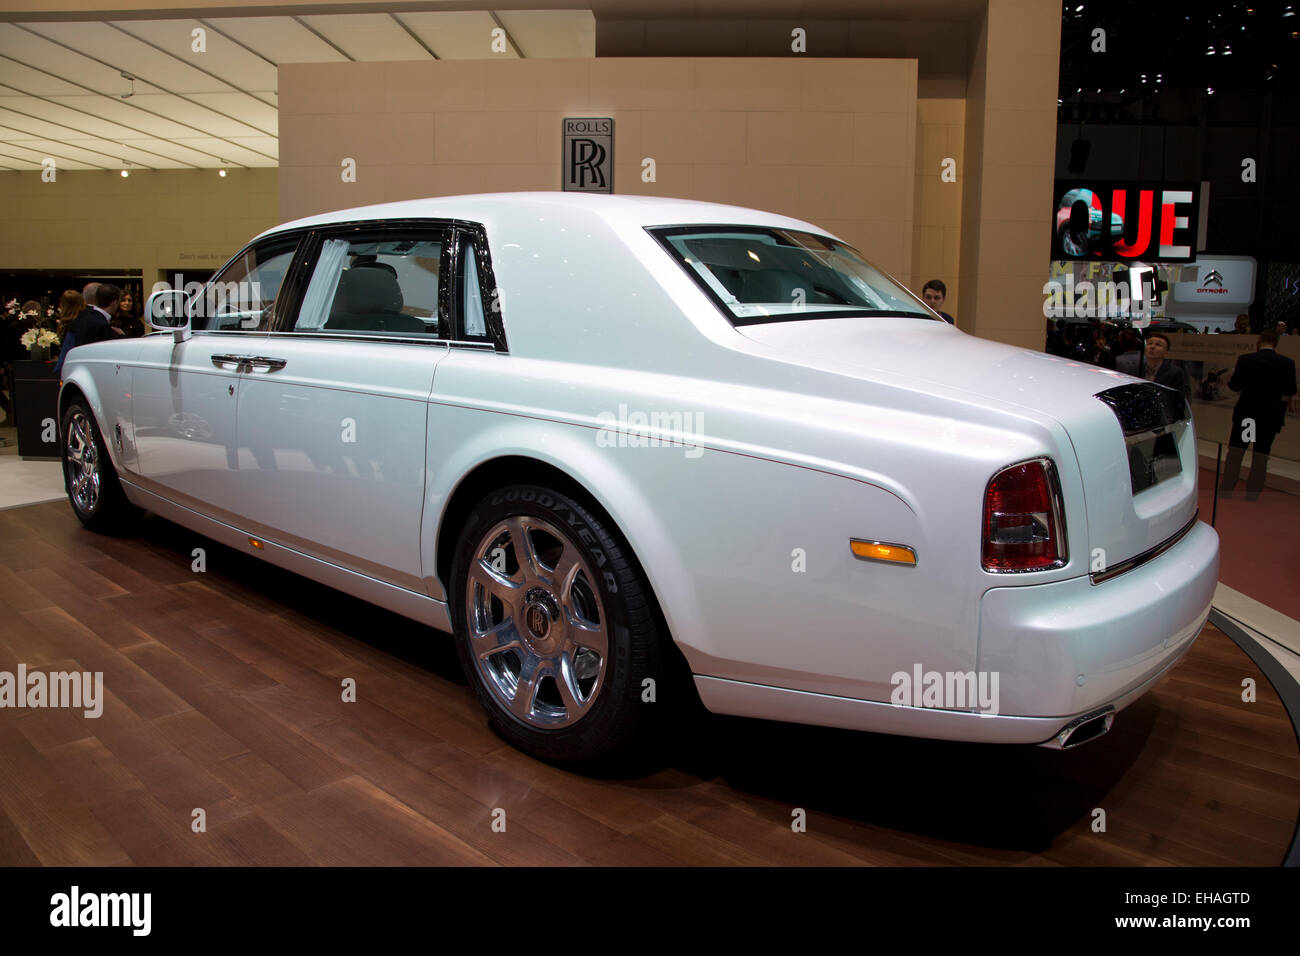 Phantom Serenity Rolls Royce Phantom Serenity At The Geneva Motor Show 2015 Stock